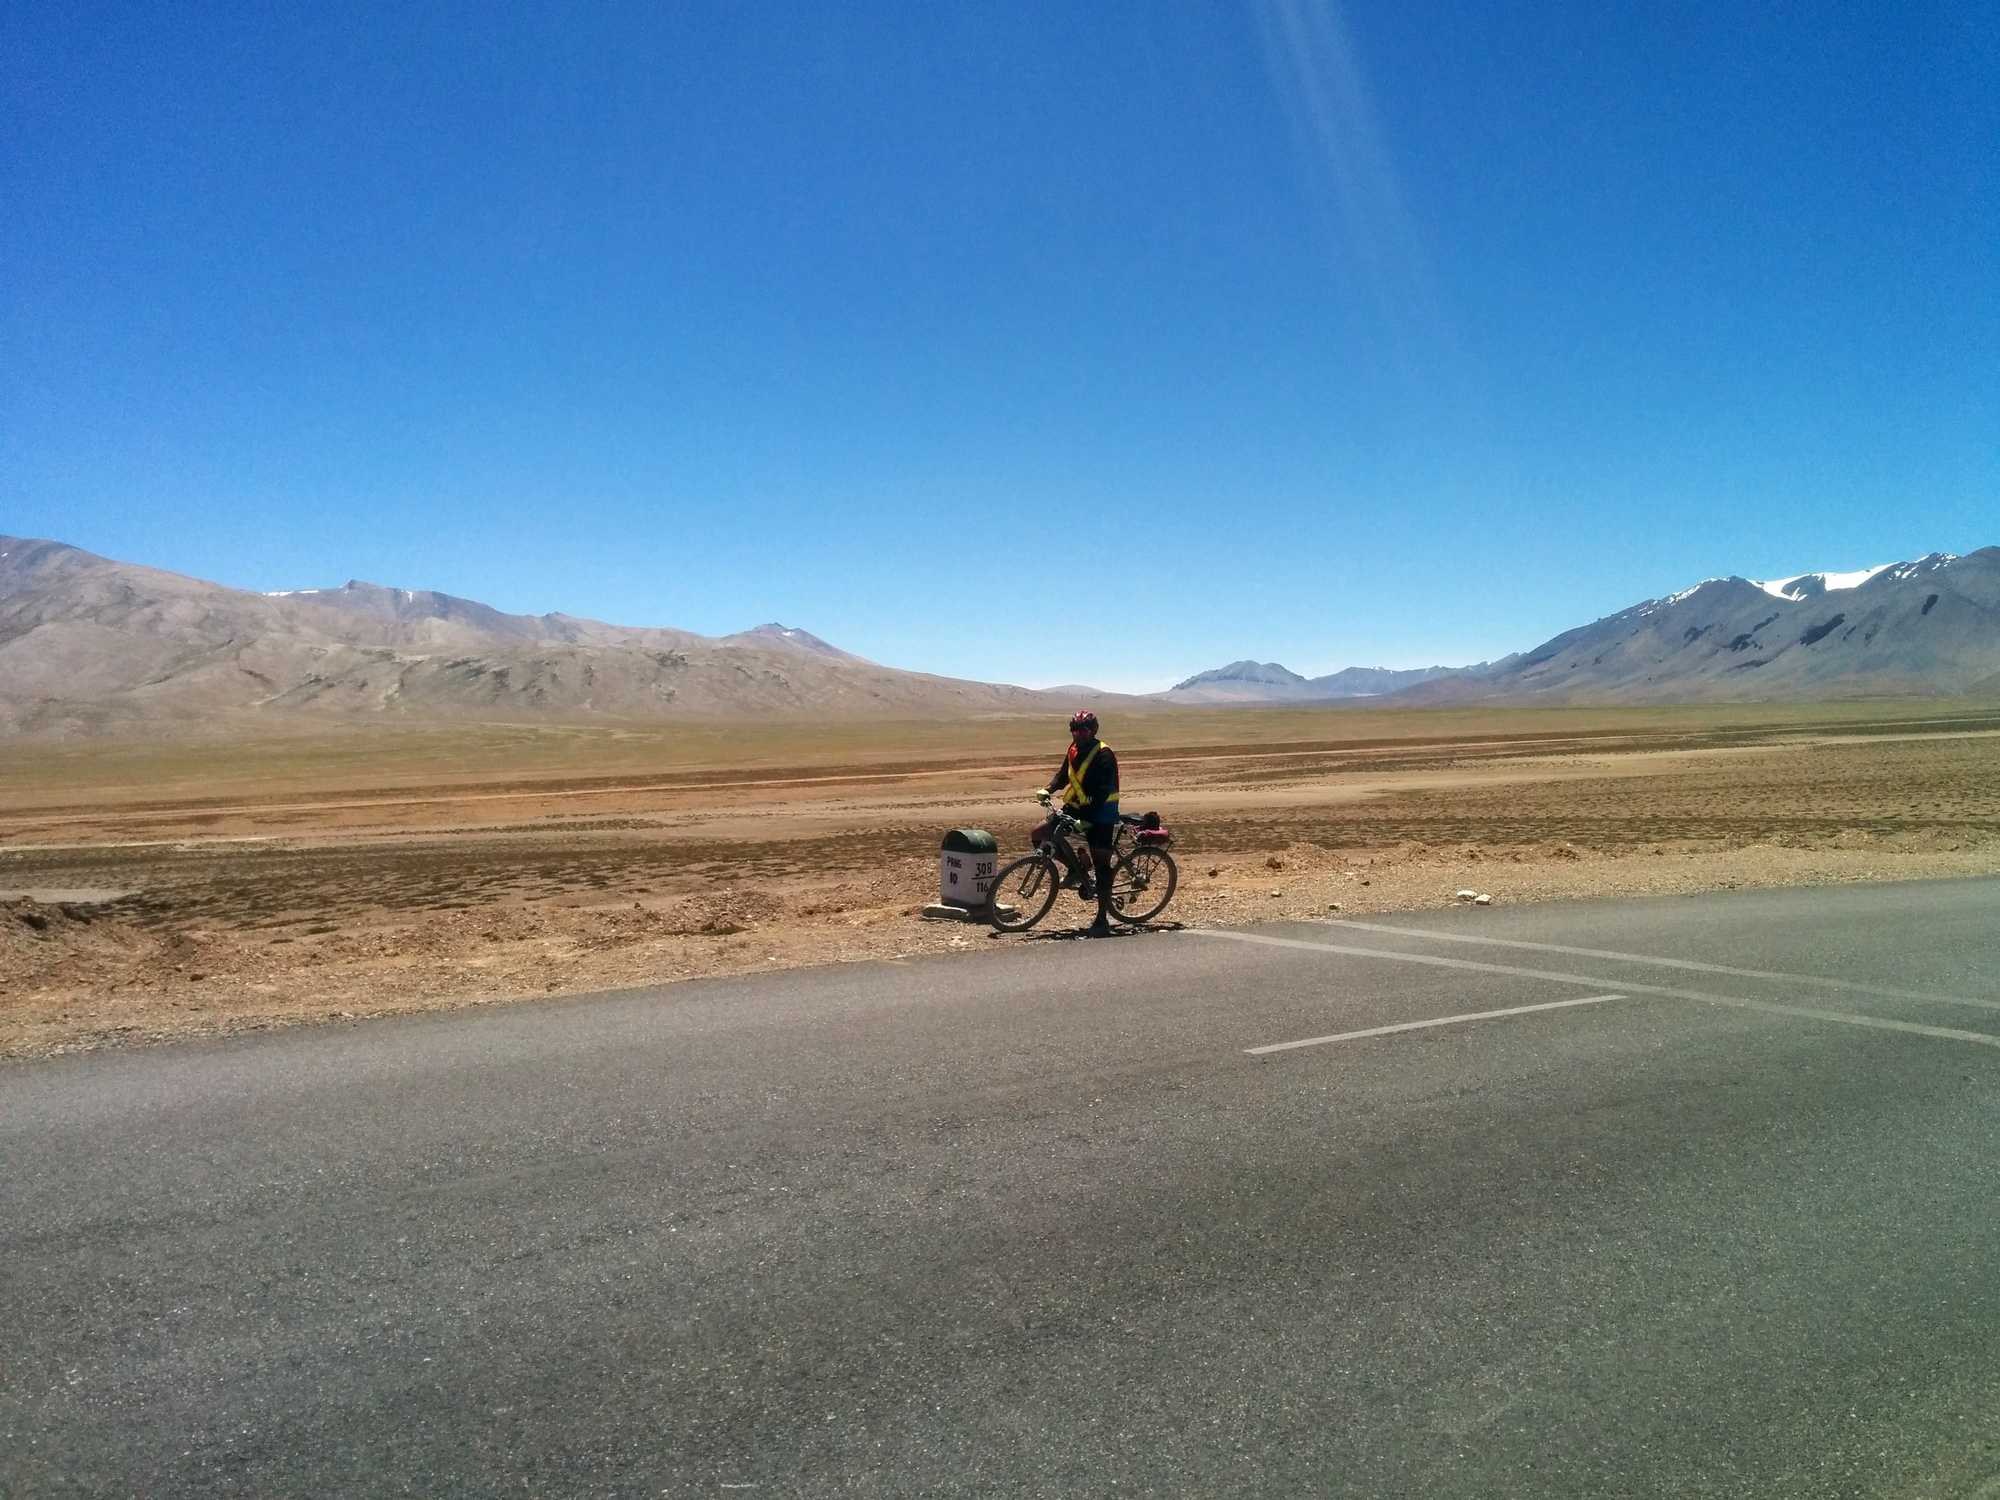 What is the fitness level required to cycle from Manali to Leh?